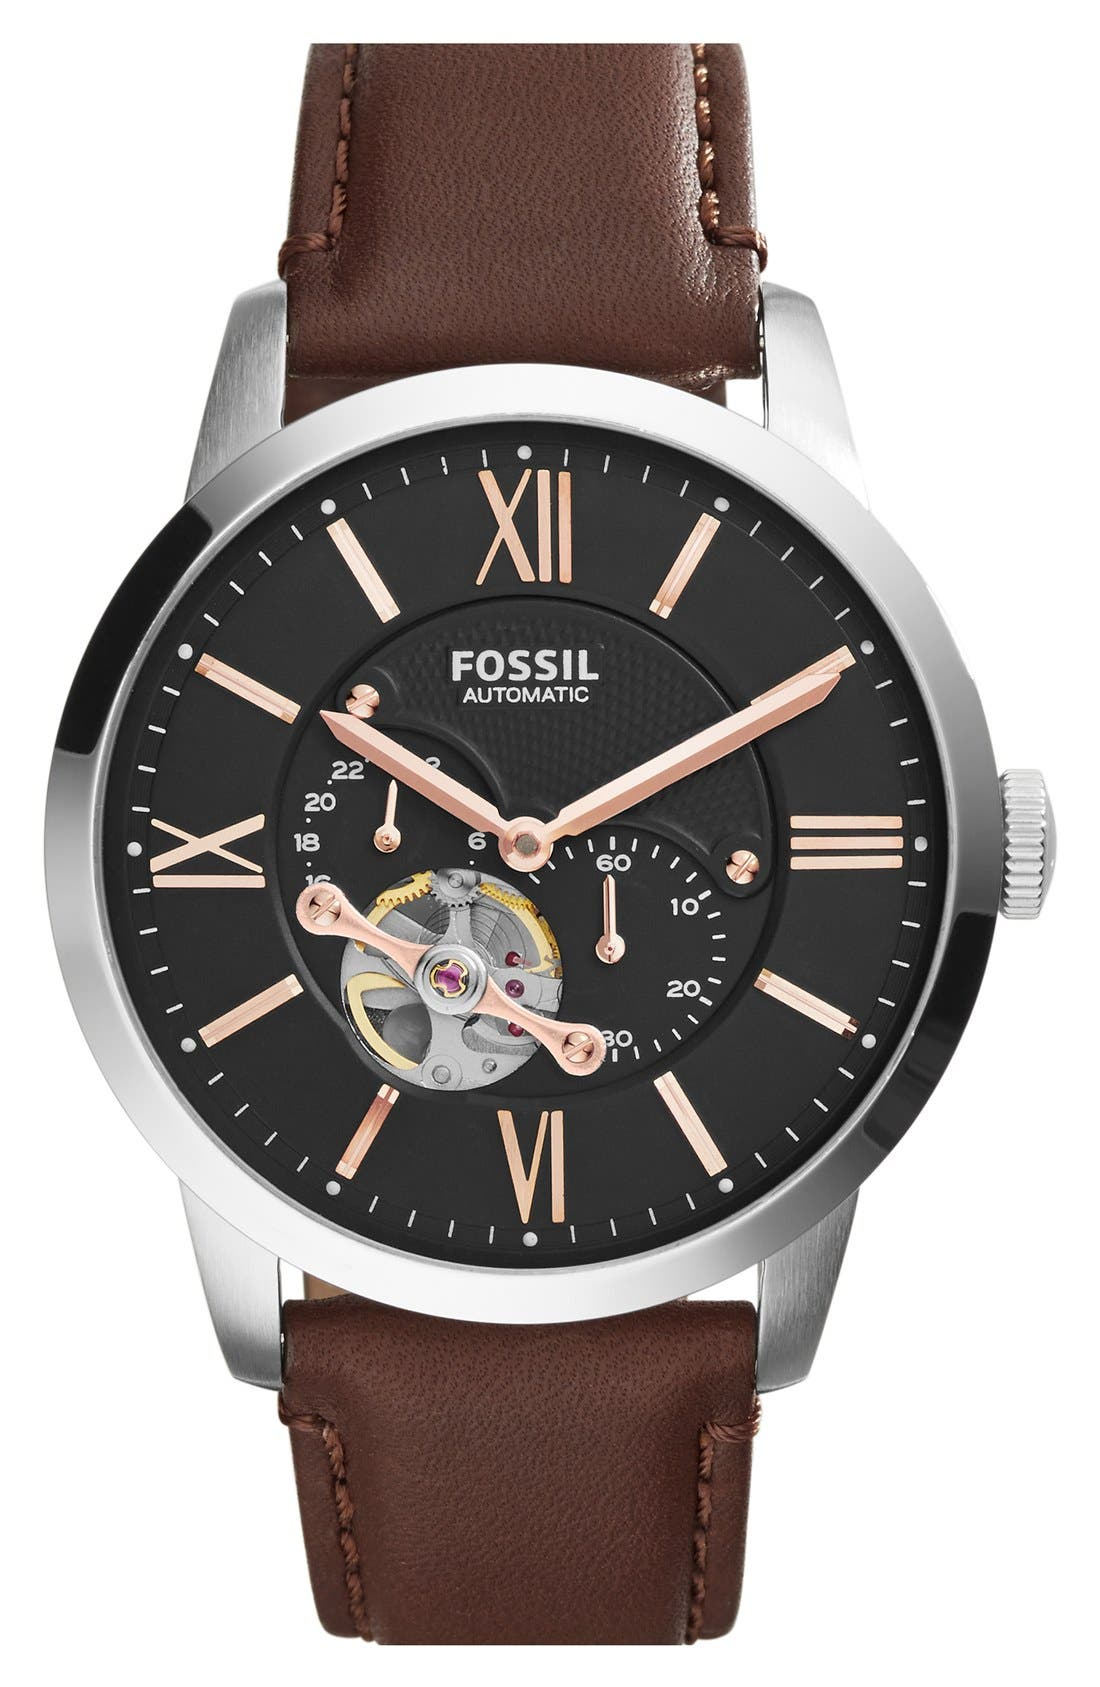 Main Image - Fossil 'Townsman' Automatic Leather Strap Watch, 44mm